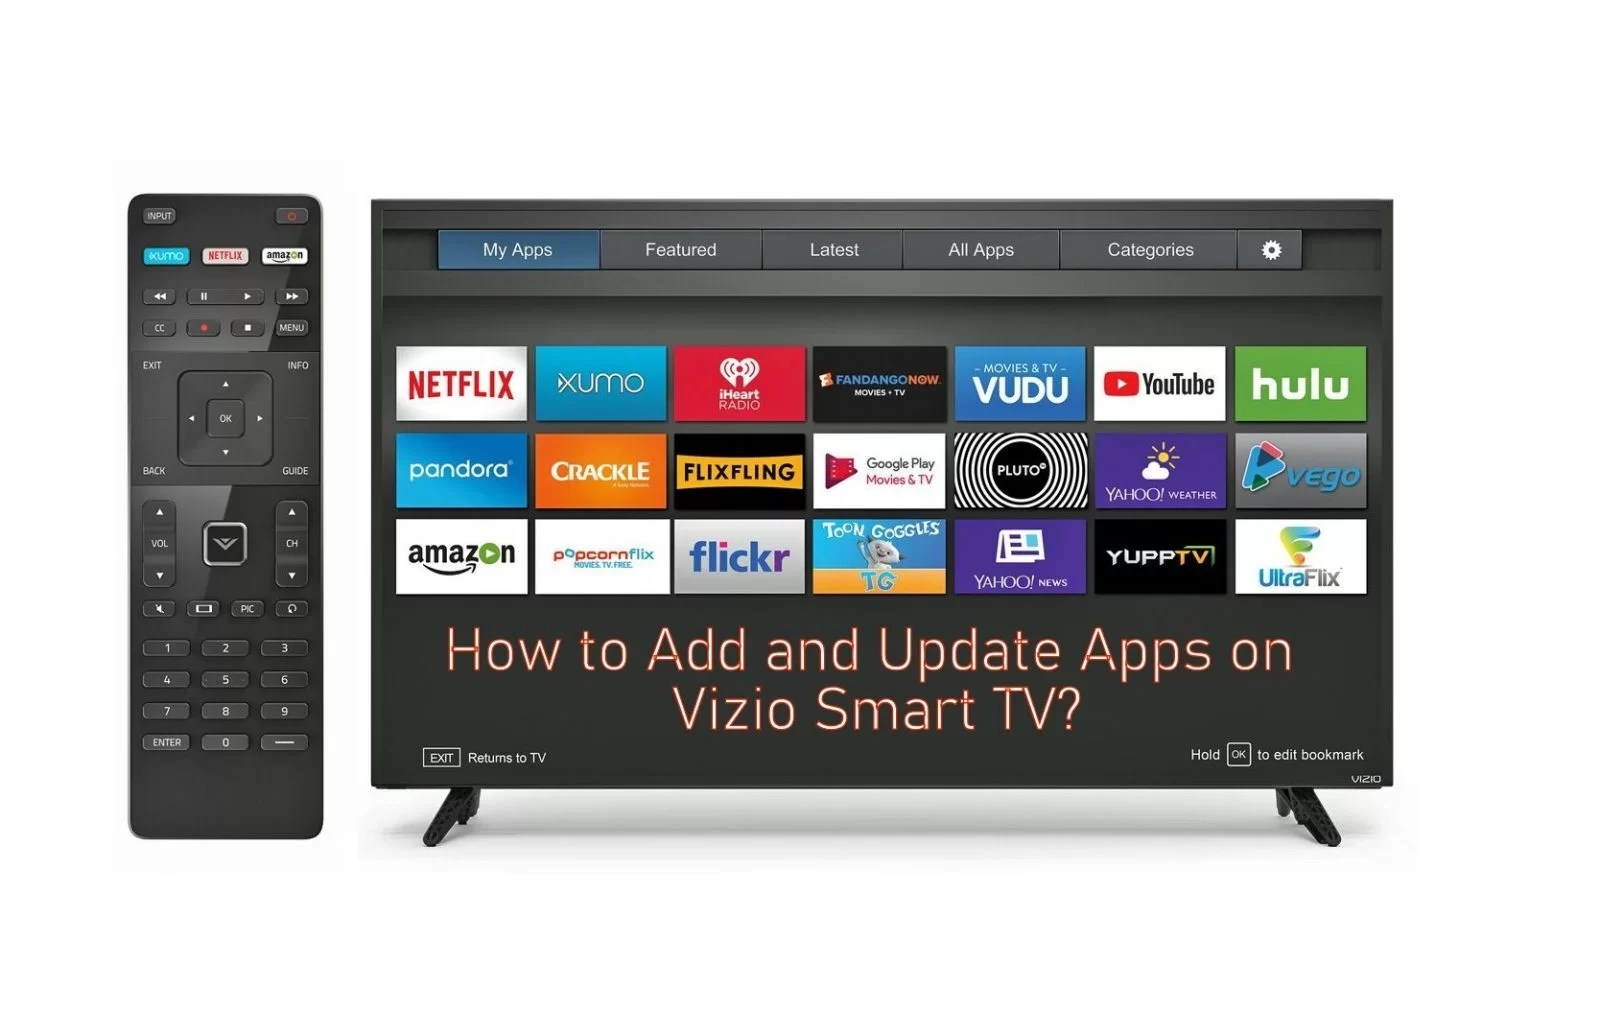 How to Add and Update Apps on Vizio Smart TV - TechOwns